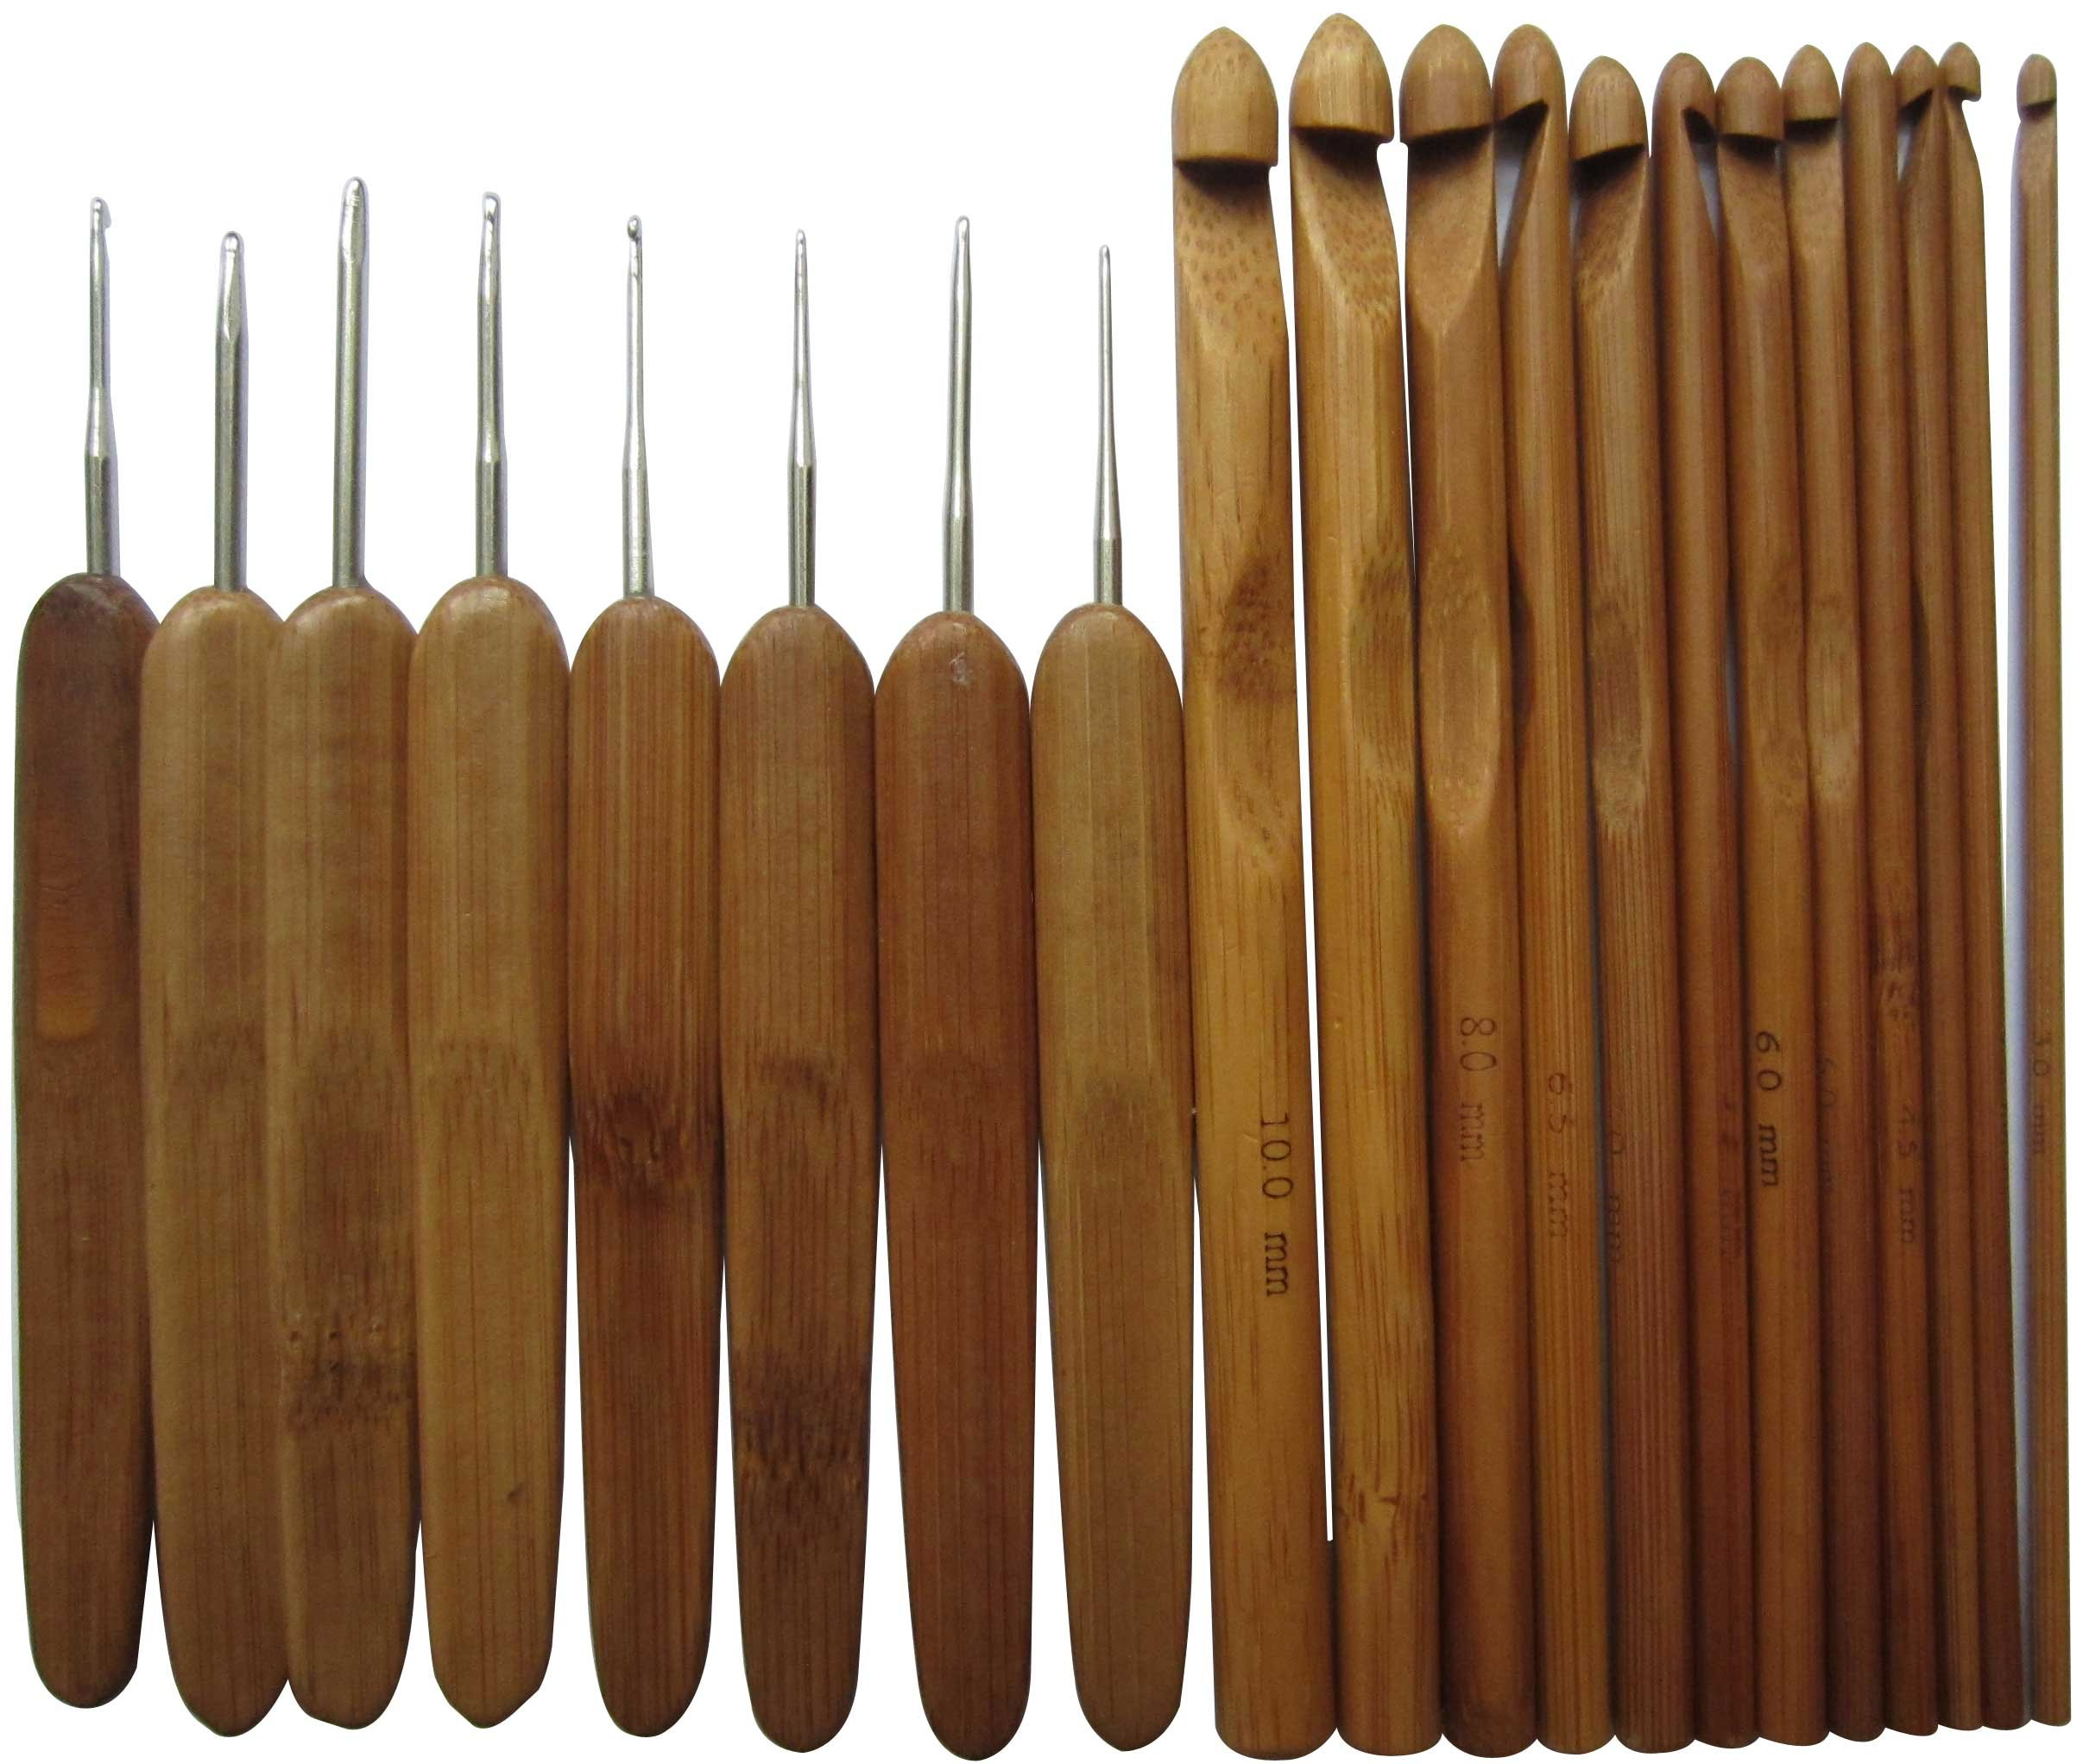 Bamboo Crochet Hooks Set - LeBeila Ergonomic Handle Knitting Needles, 20 Professional Carbonized Bamboo Knit Needle & Metal Crocheting Hook In Different Sizes With Compact Carry Case (20 PCS, Purple)